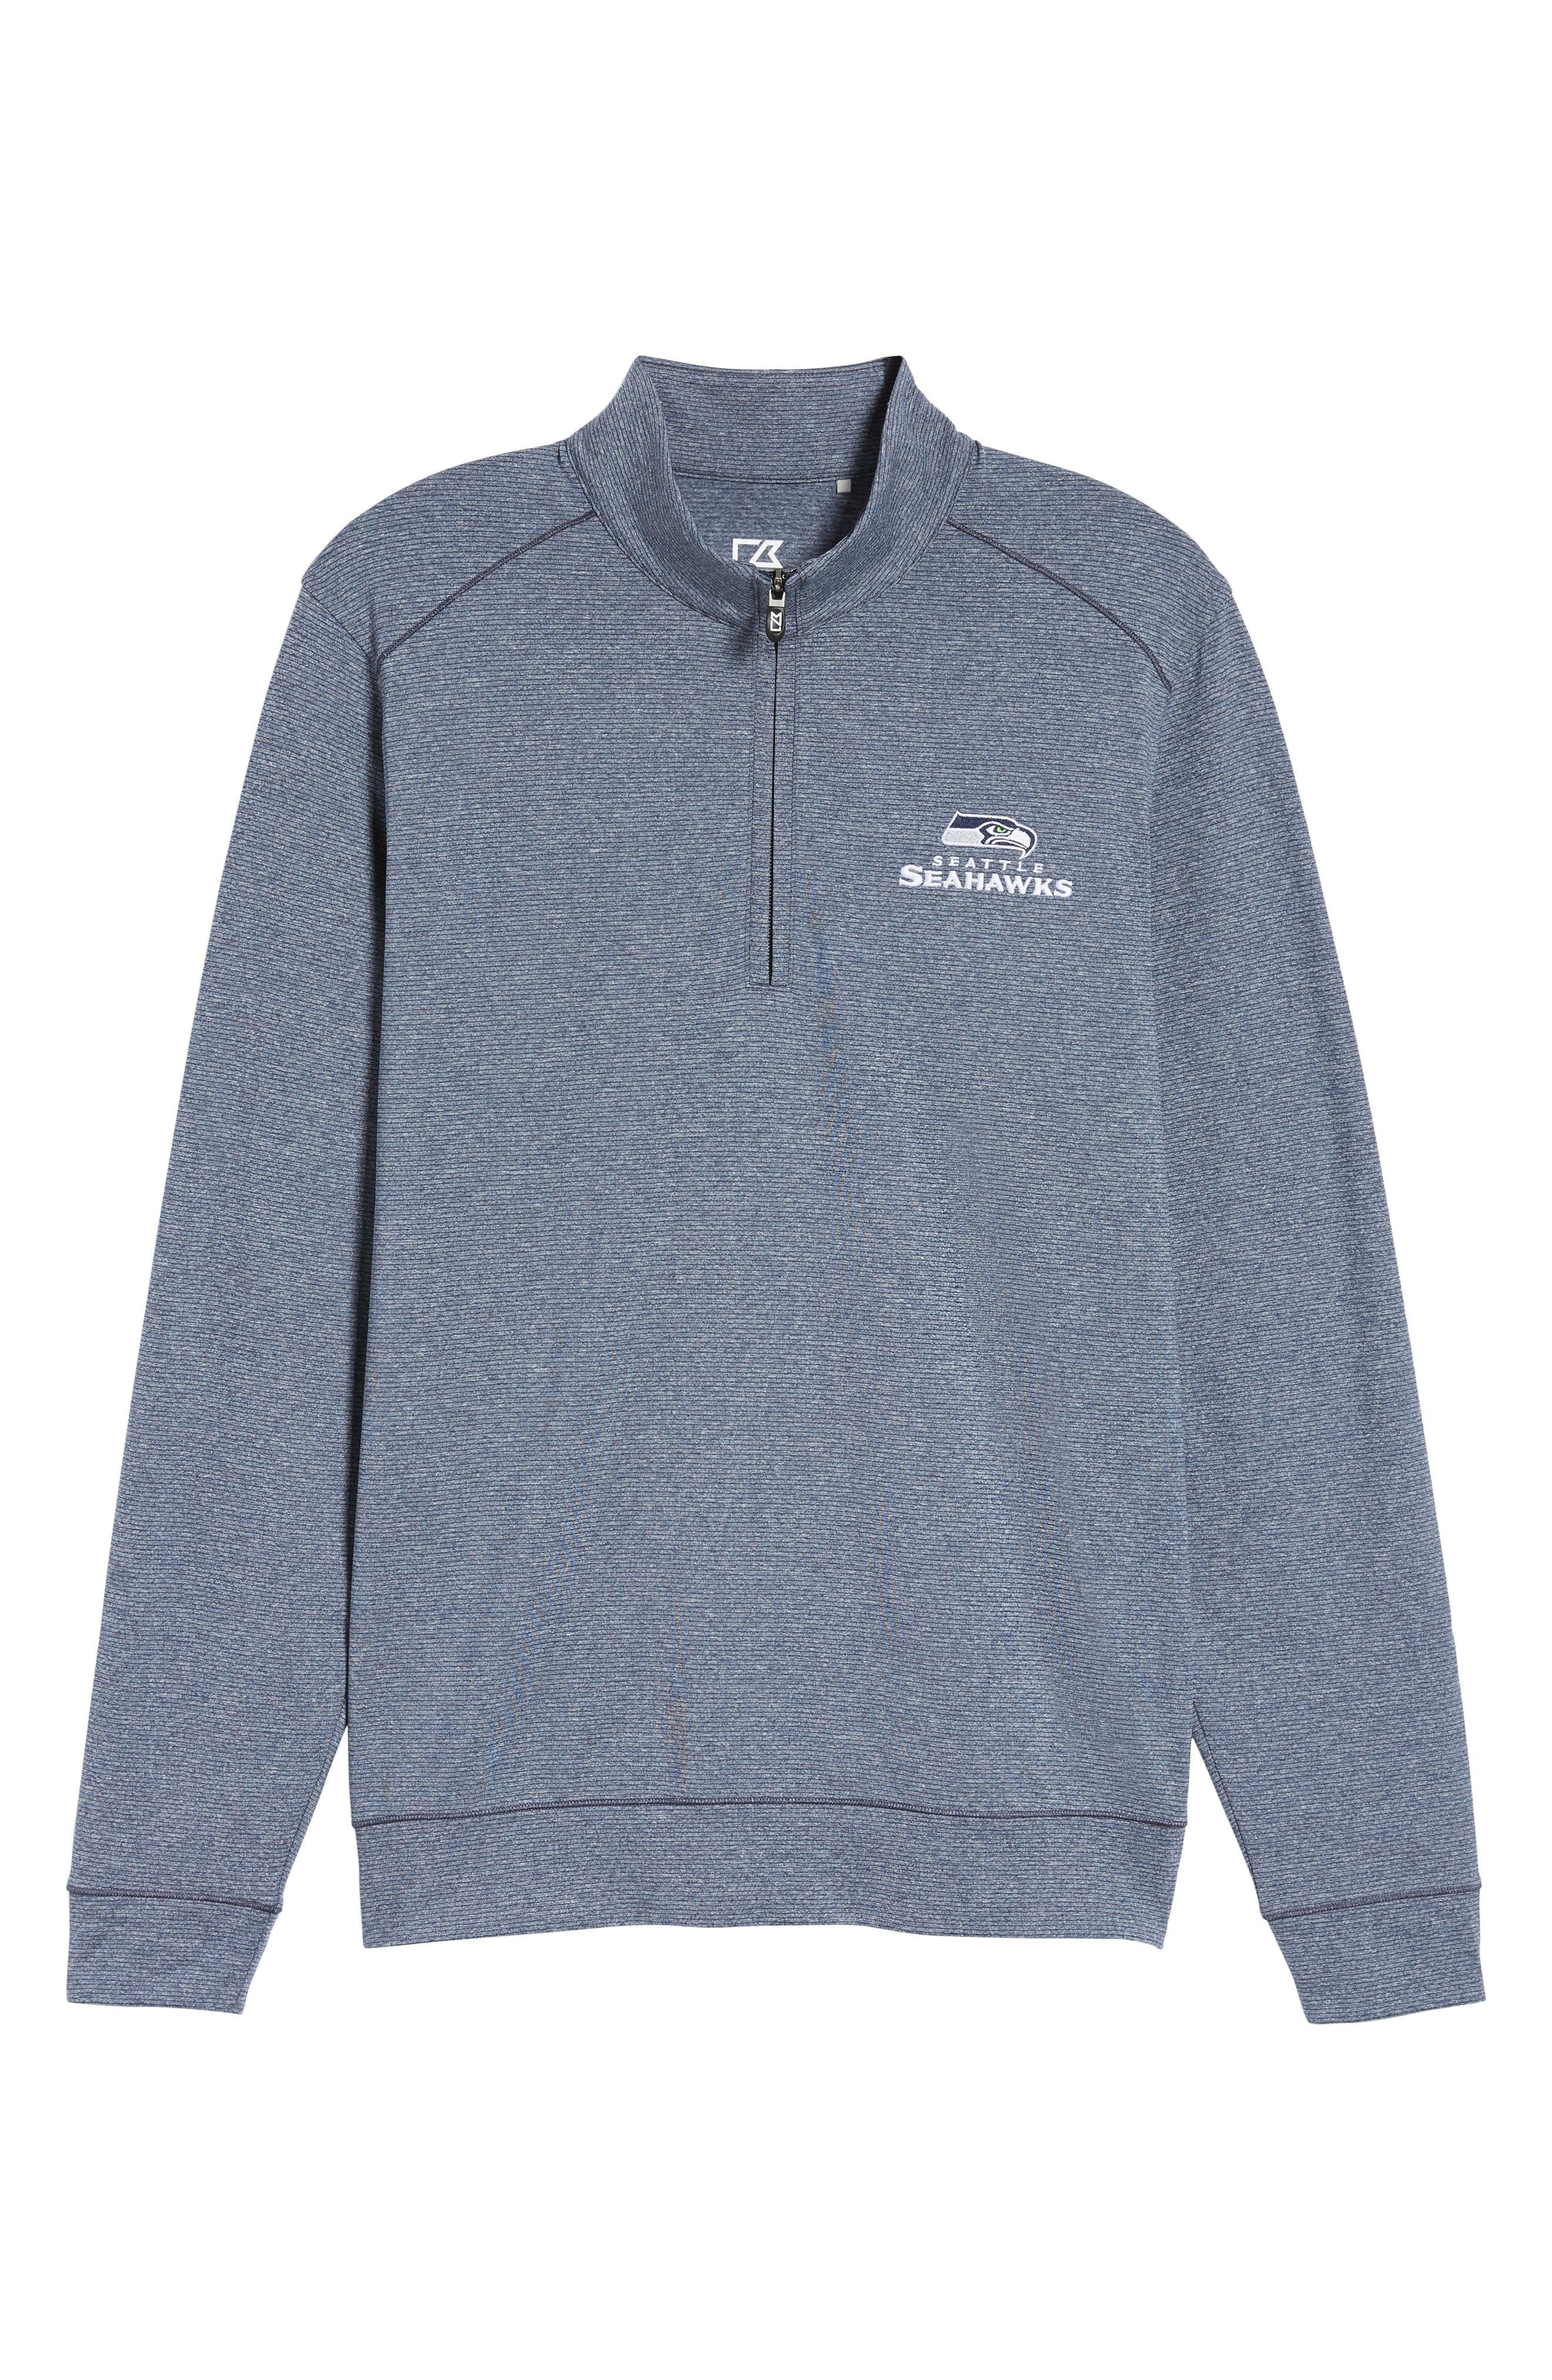 Seahawks Shoreline Quarter Zip Pullover,                             Alternate thumbnail 6, color,                             Liberty Navy Heather